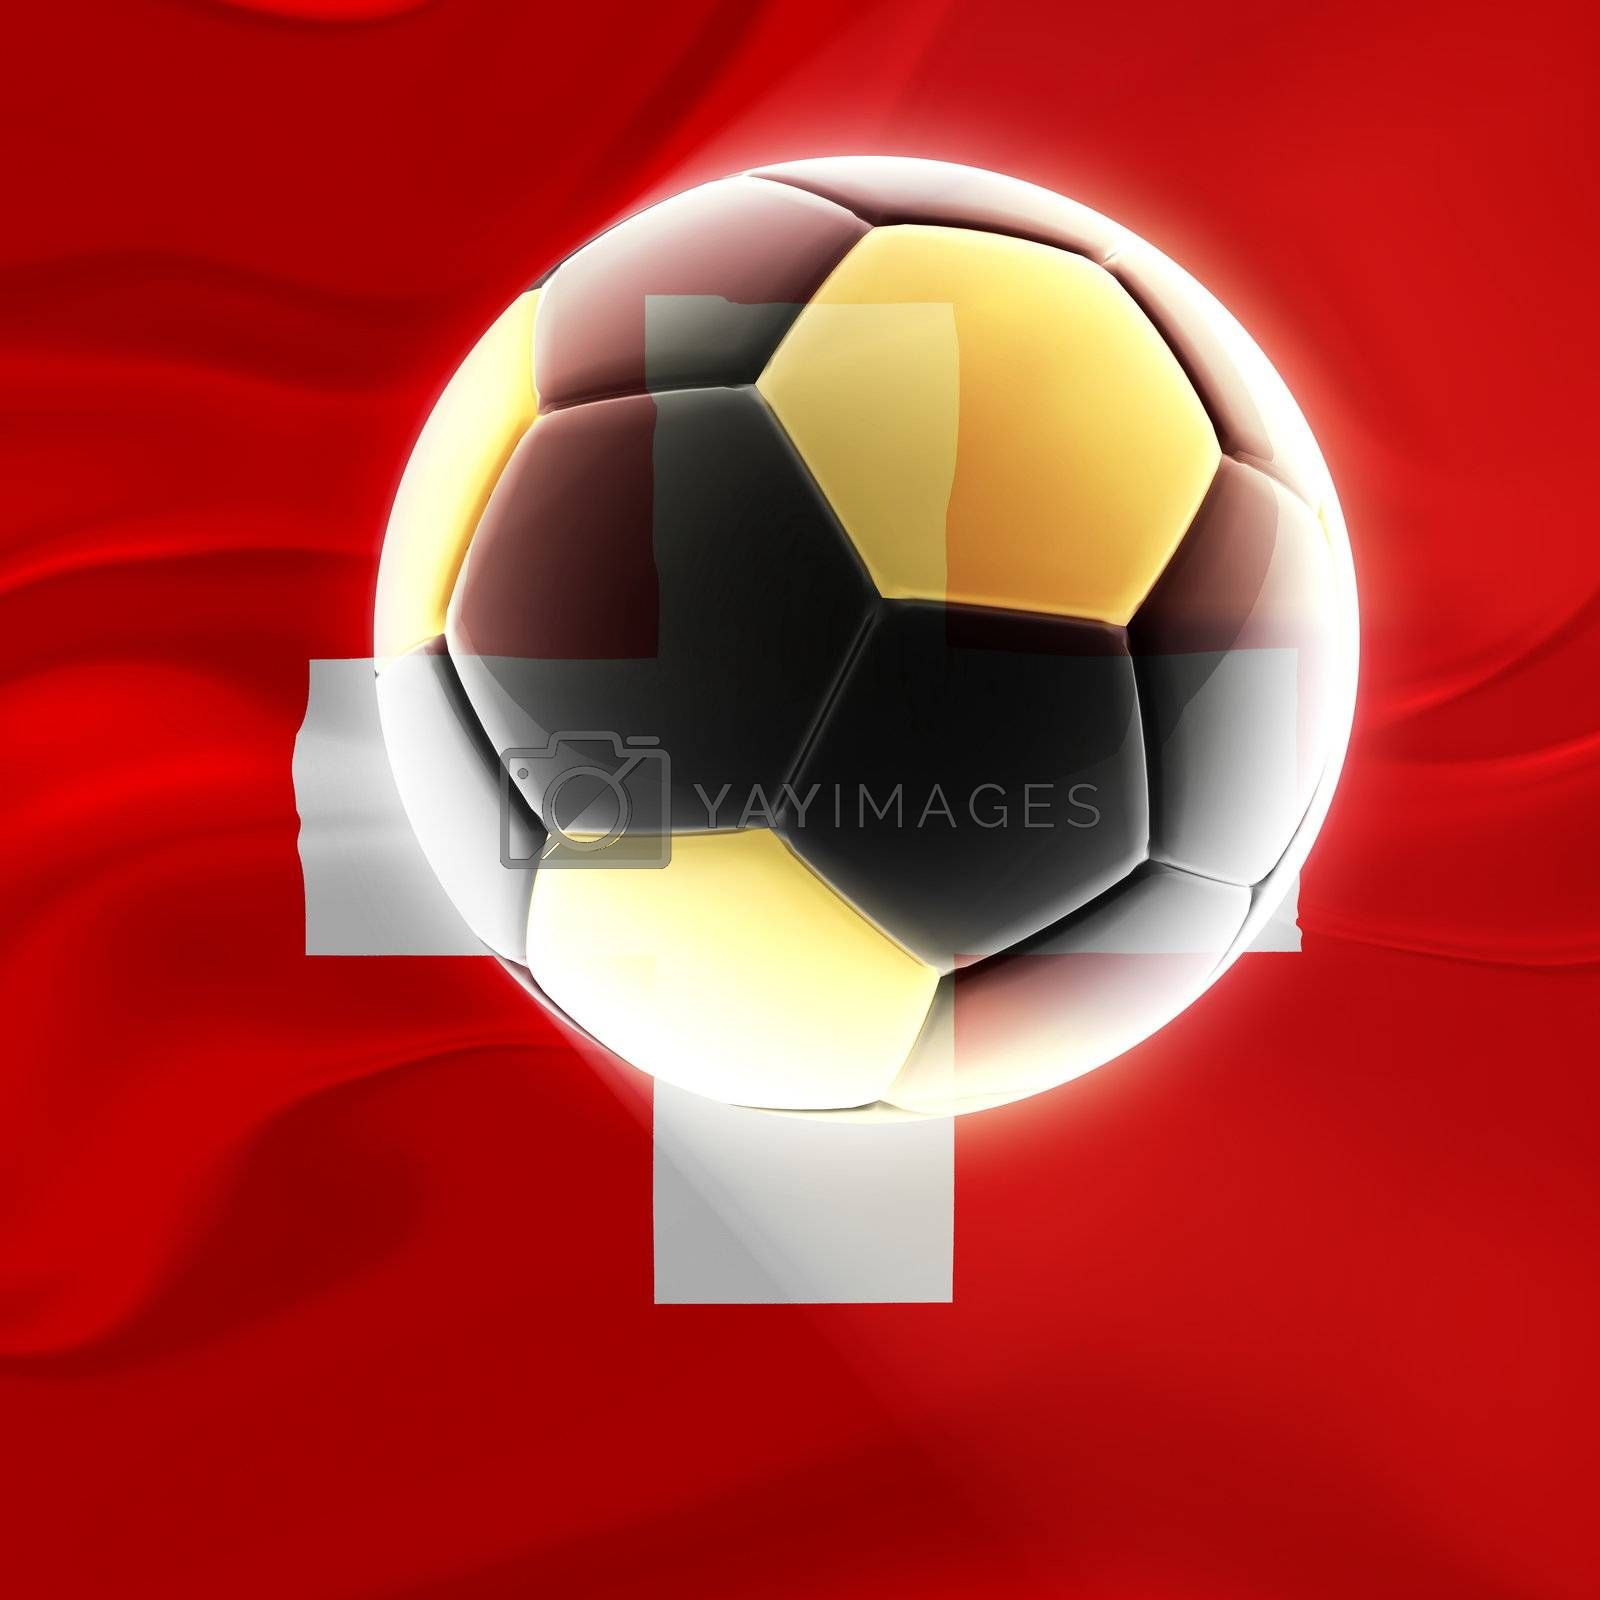 Flag of Switzerland, national symbol illustration clipart wavy fabric sports soccer football